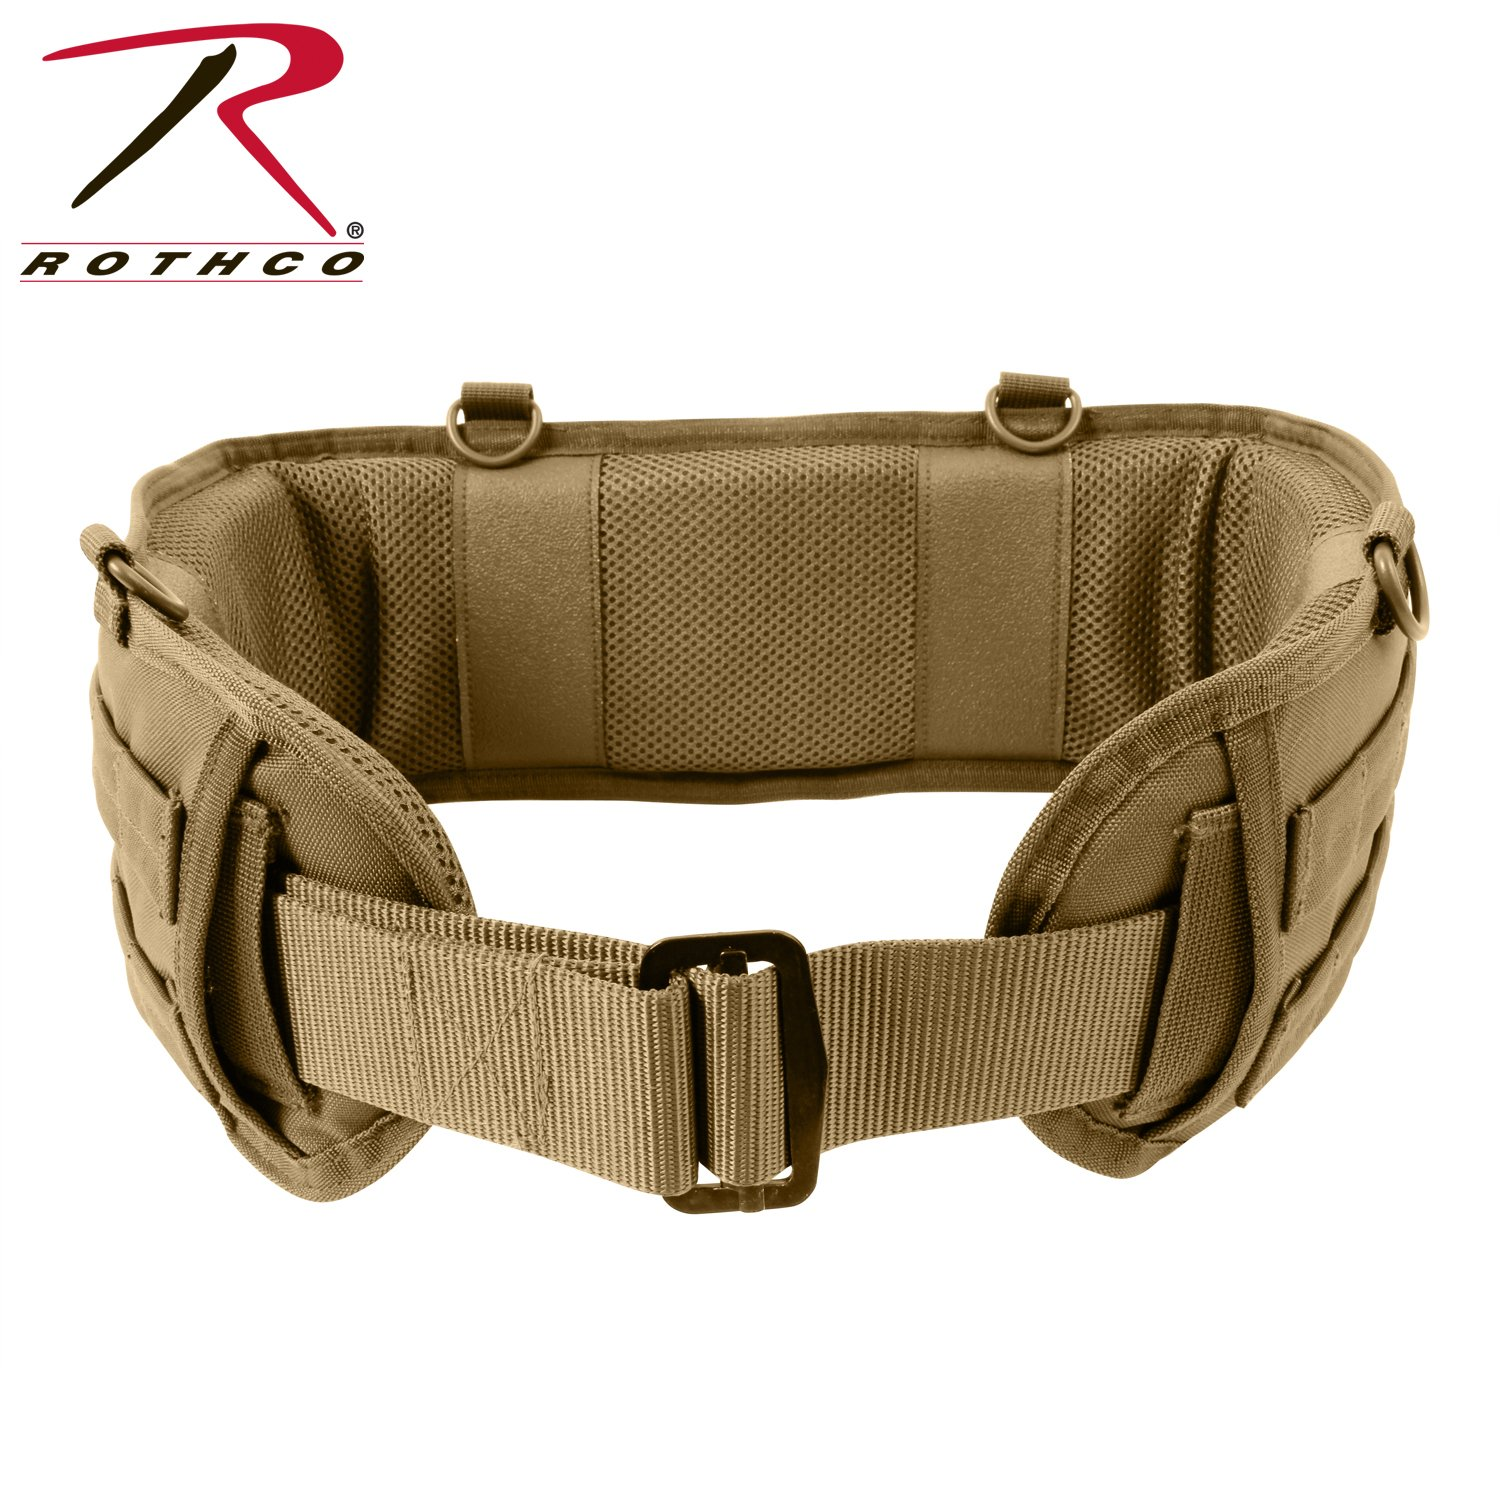 Rothco Battle Belt 10679BLK / L